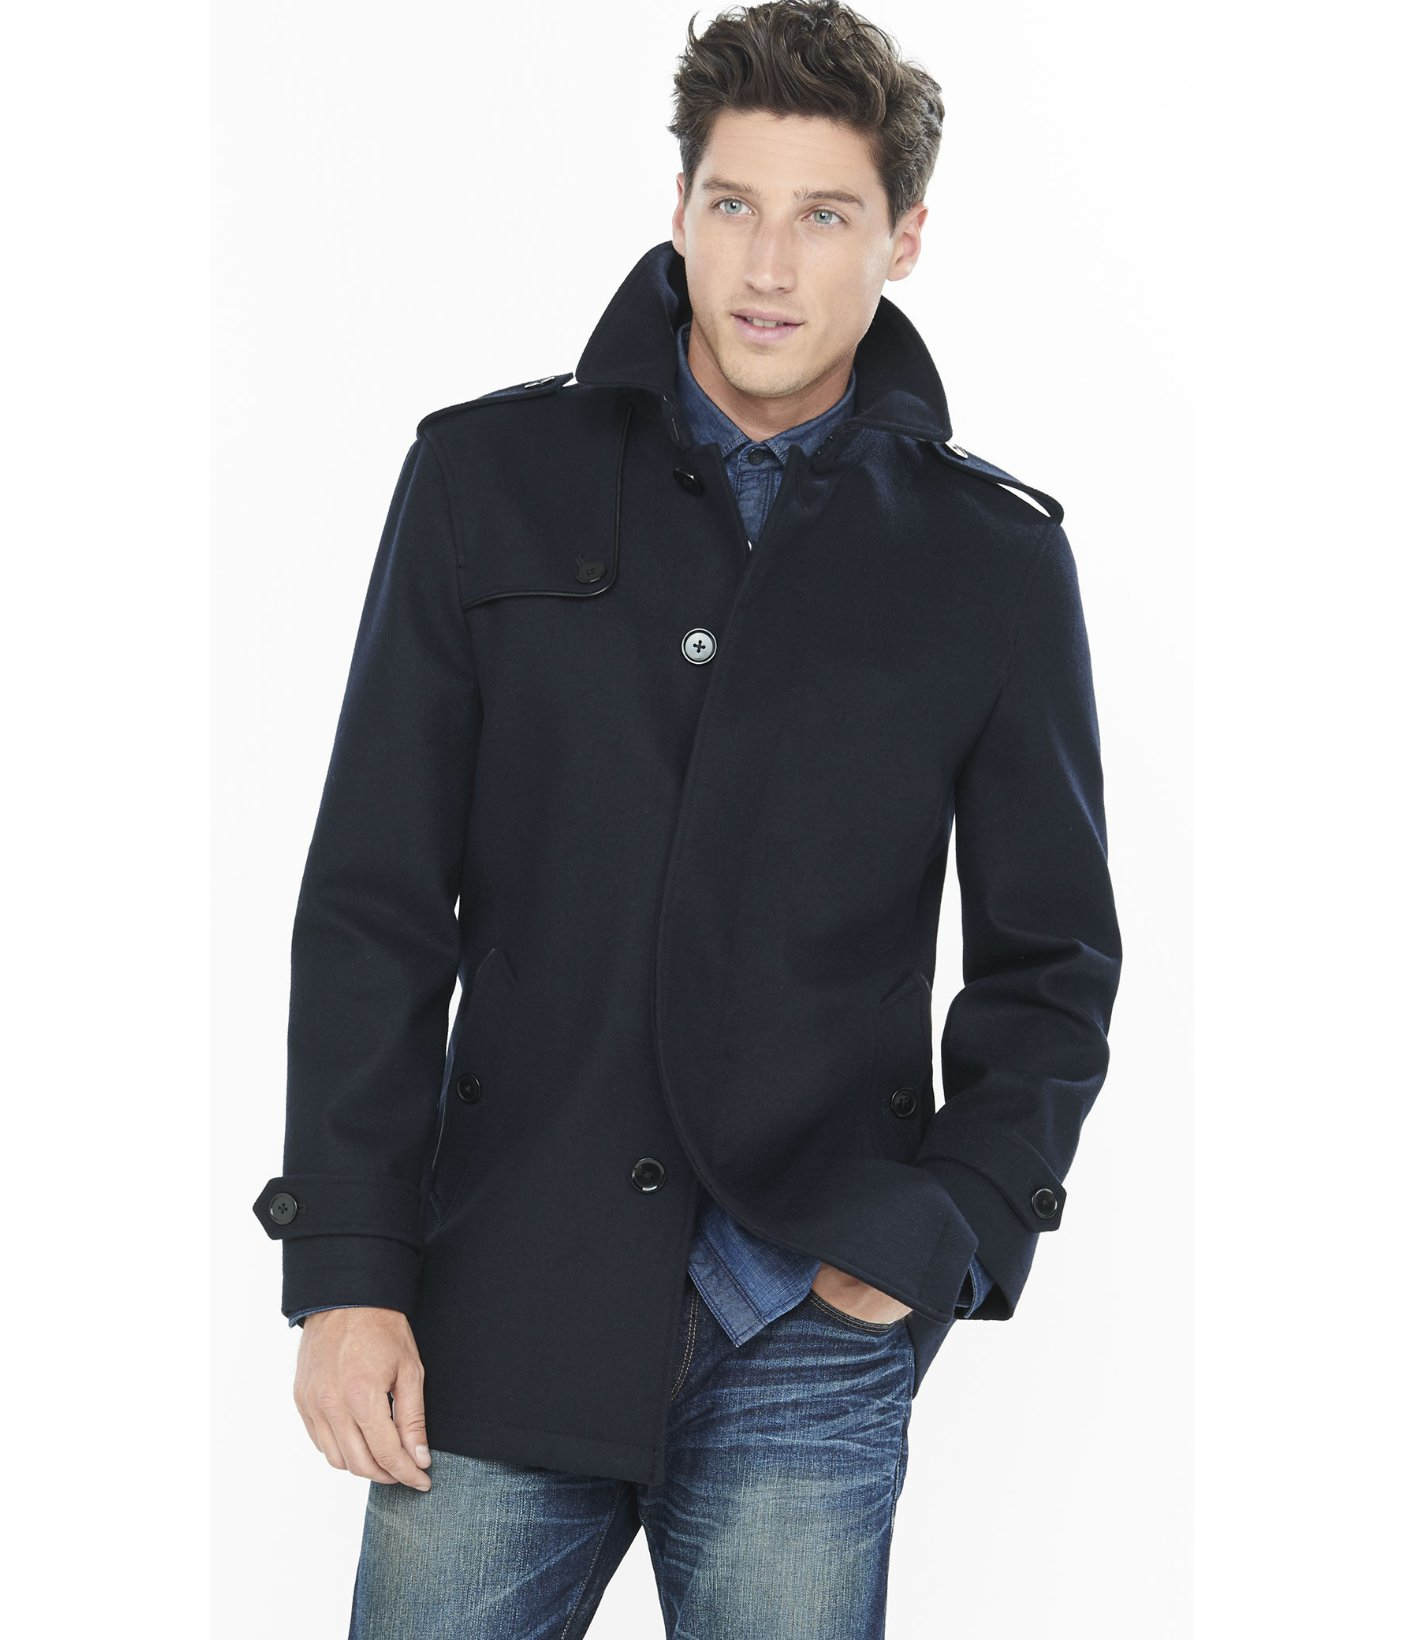 Images of Express Mens Coat - Watch Out, There's a Clothes About